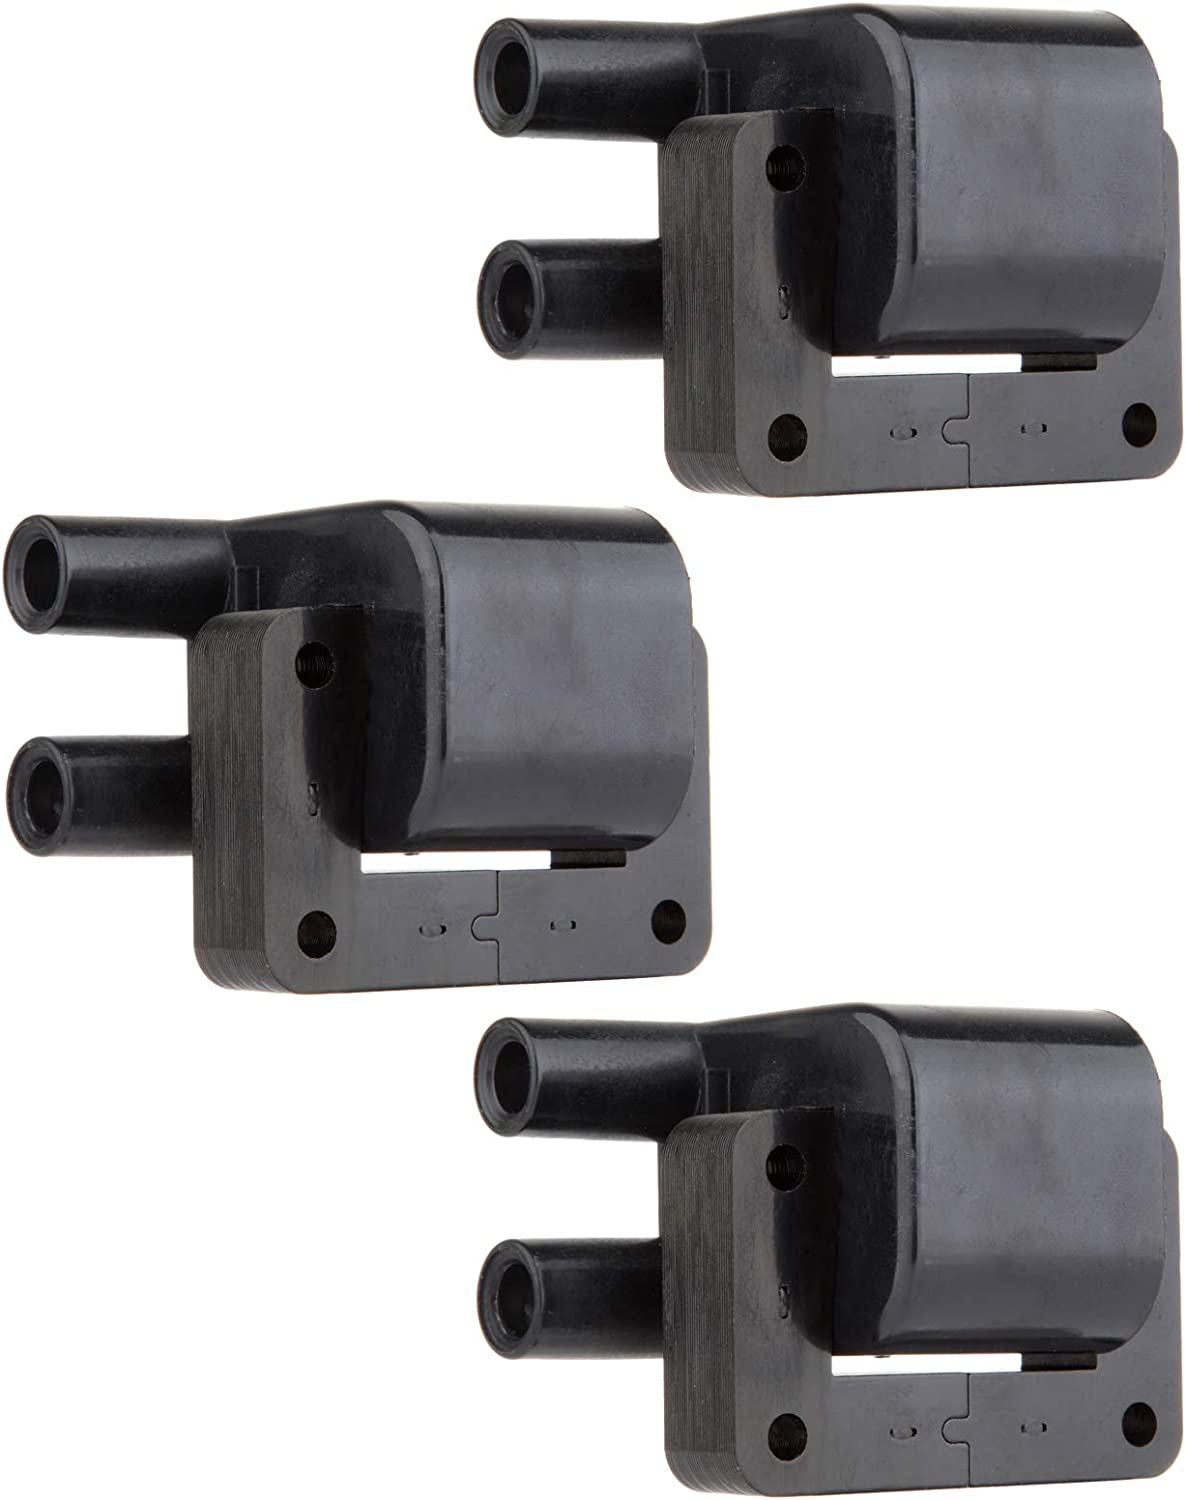 Aintier Set of 3 Ignition Coil Pack Compatible with Dodge Eagle Land Rover Mitsubishi 1991-1999 UF143 C518